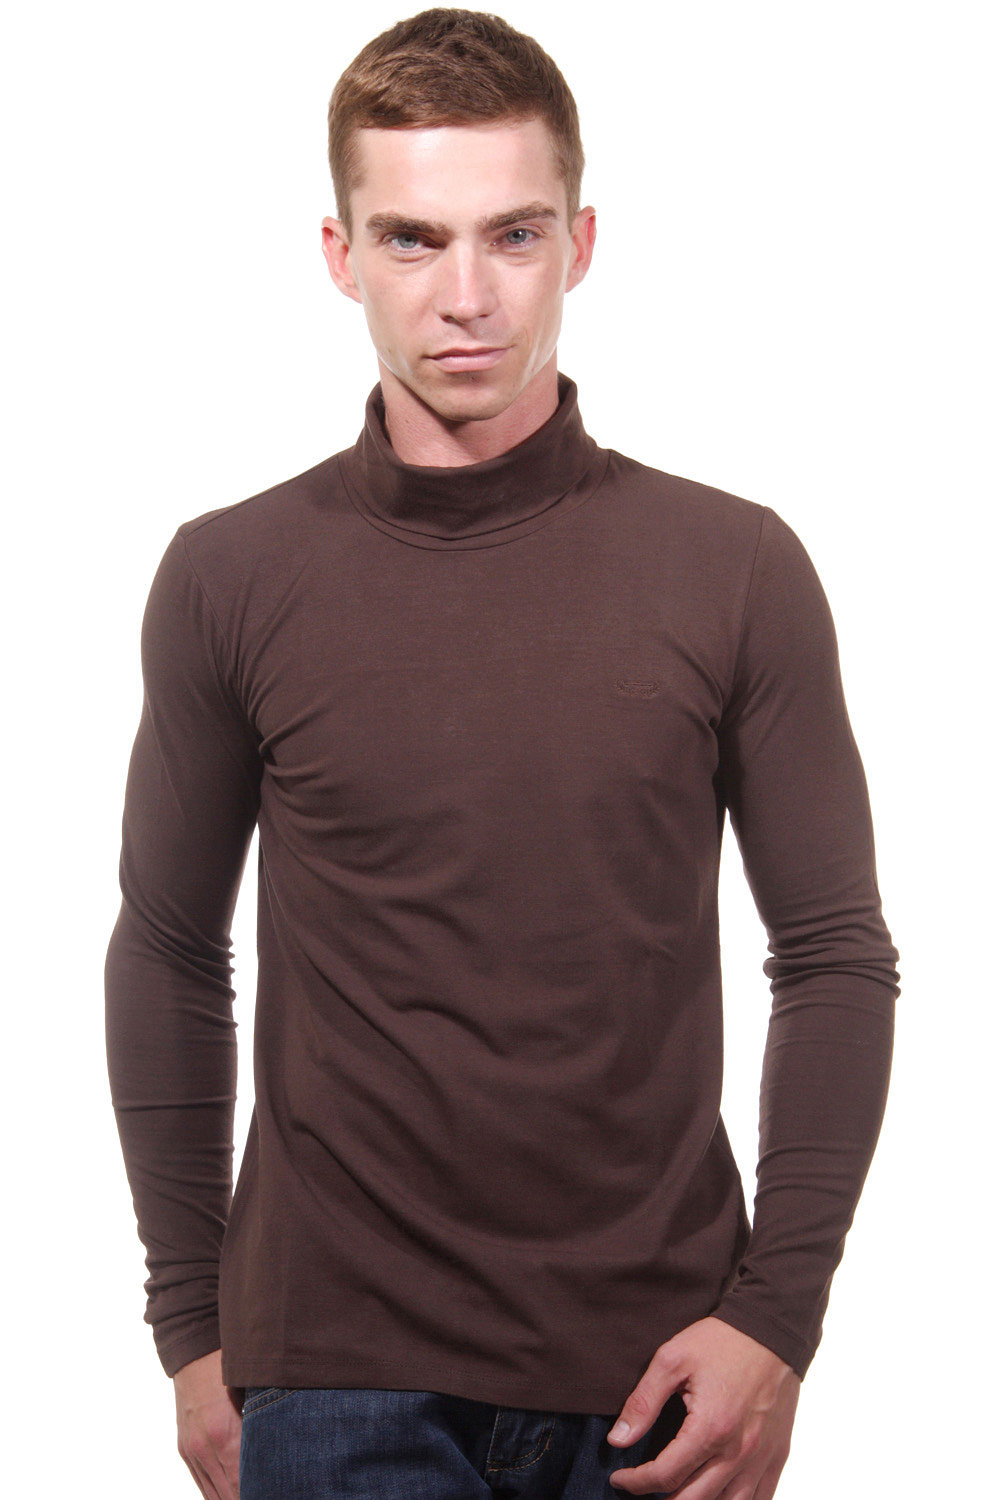 XINT long sleeve top turtleneck slim fit at oboy.com